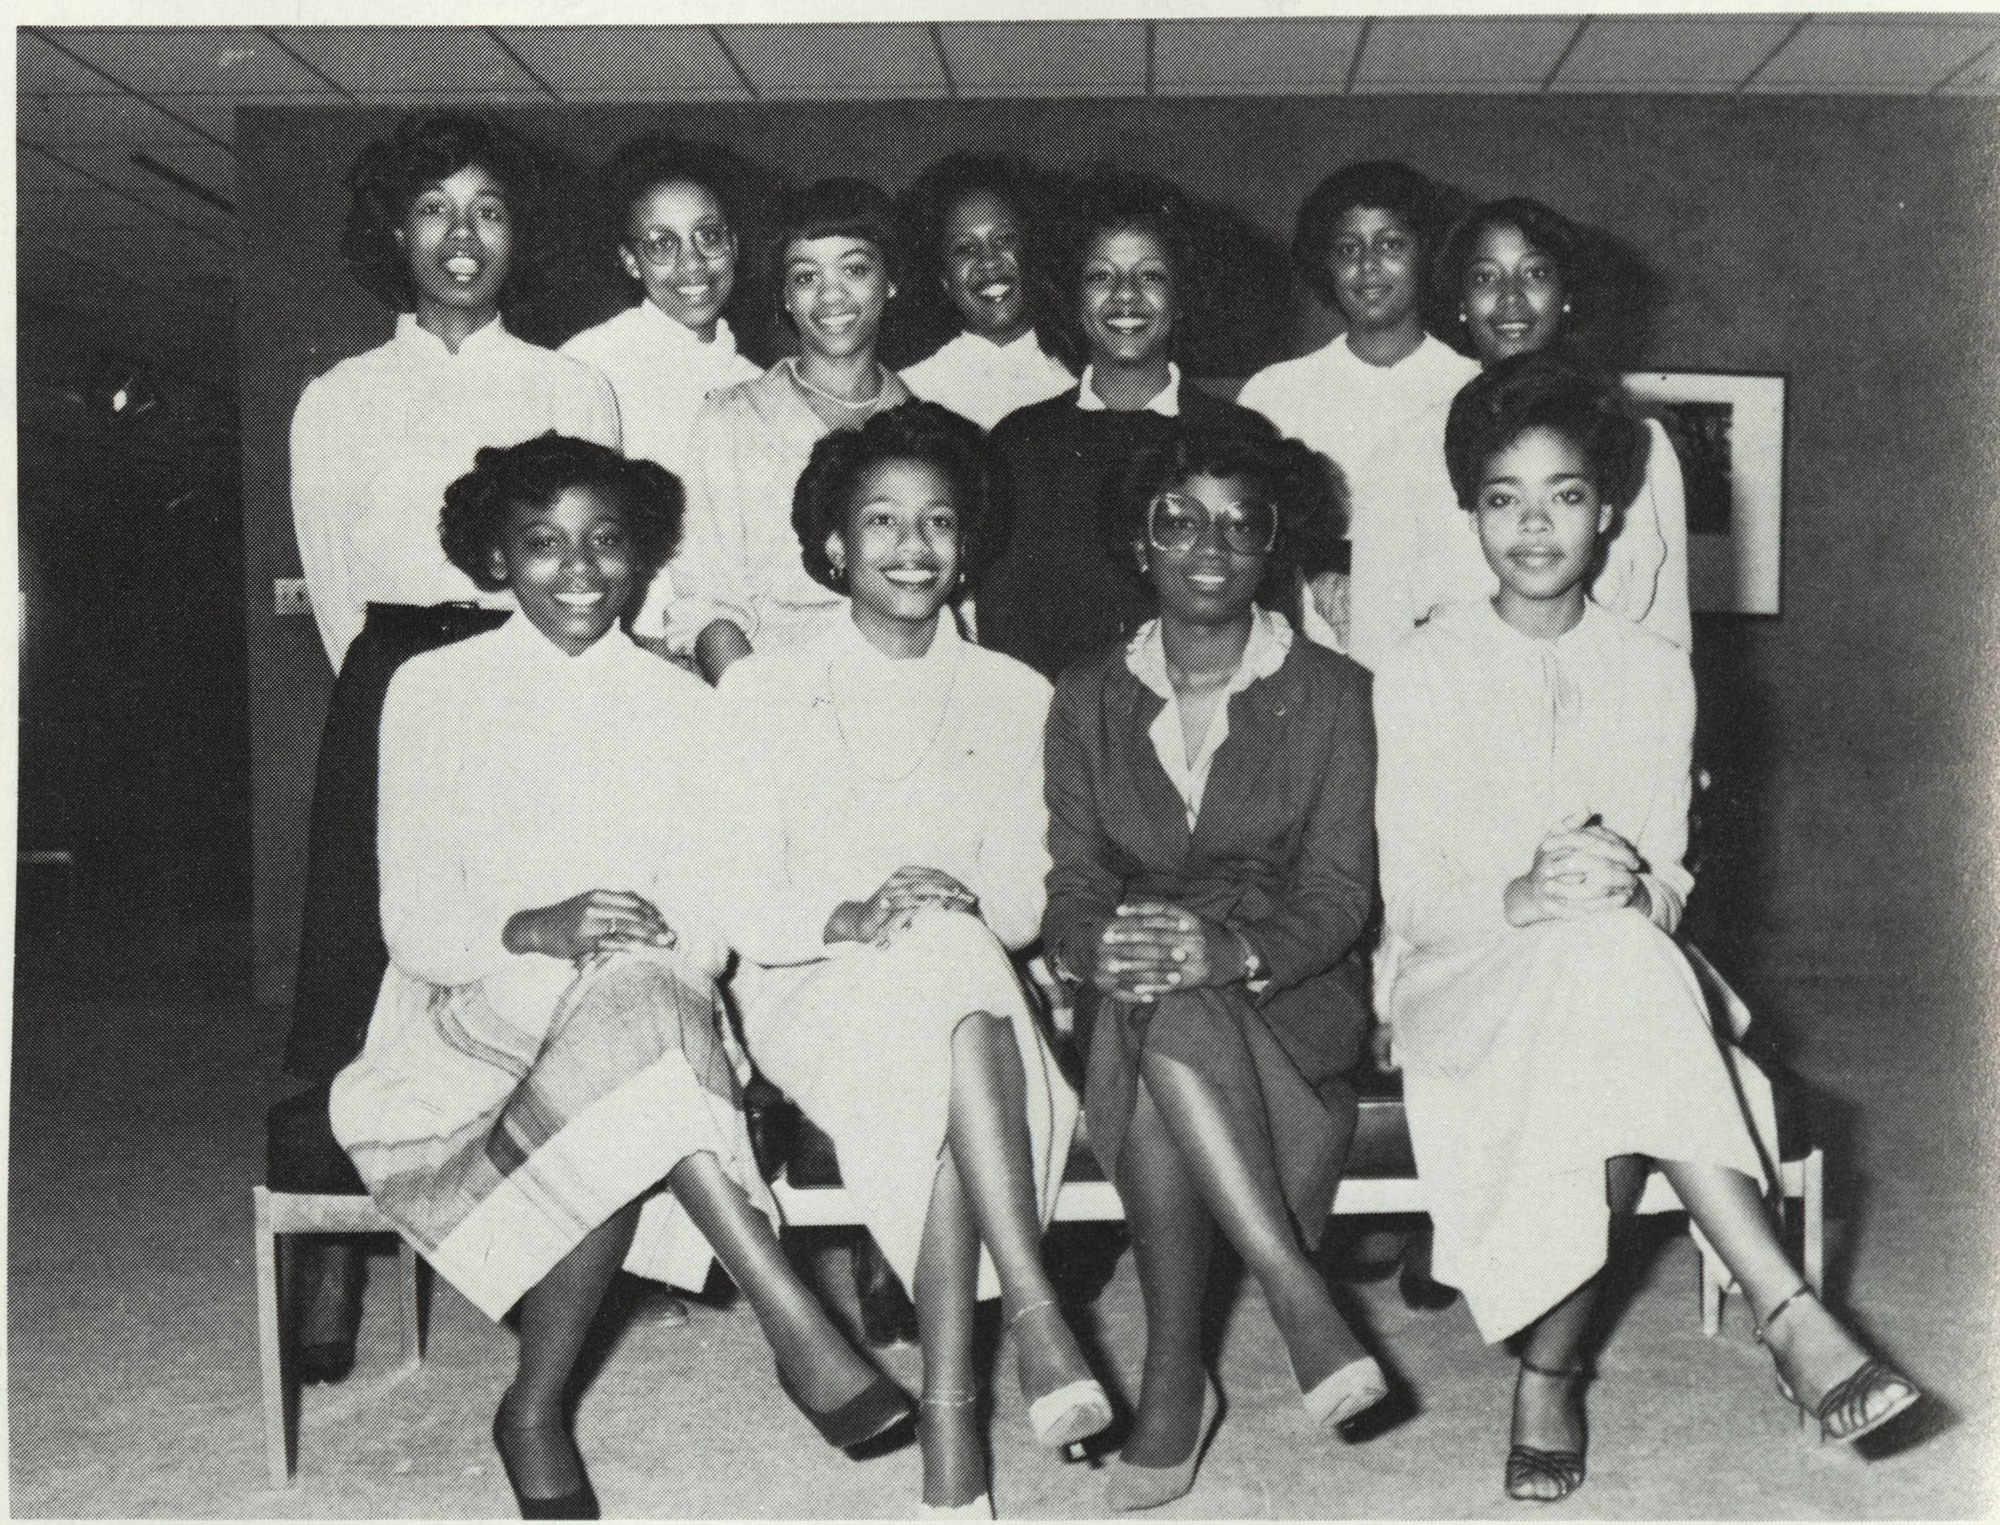 http://spec.lib.vt.edu/pickup/Omeka_upload/AlphaKappaAlpha_1982.jpg